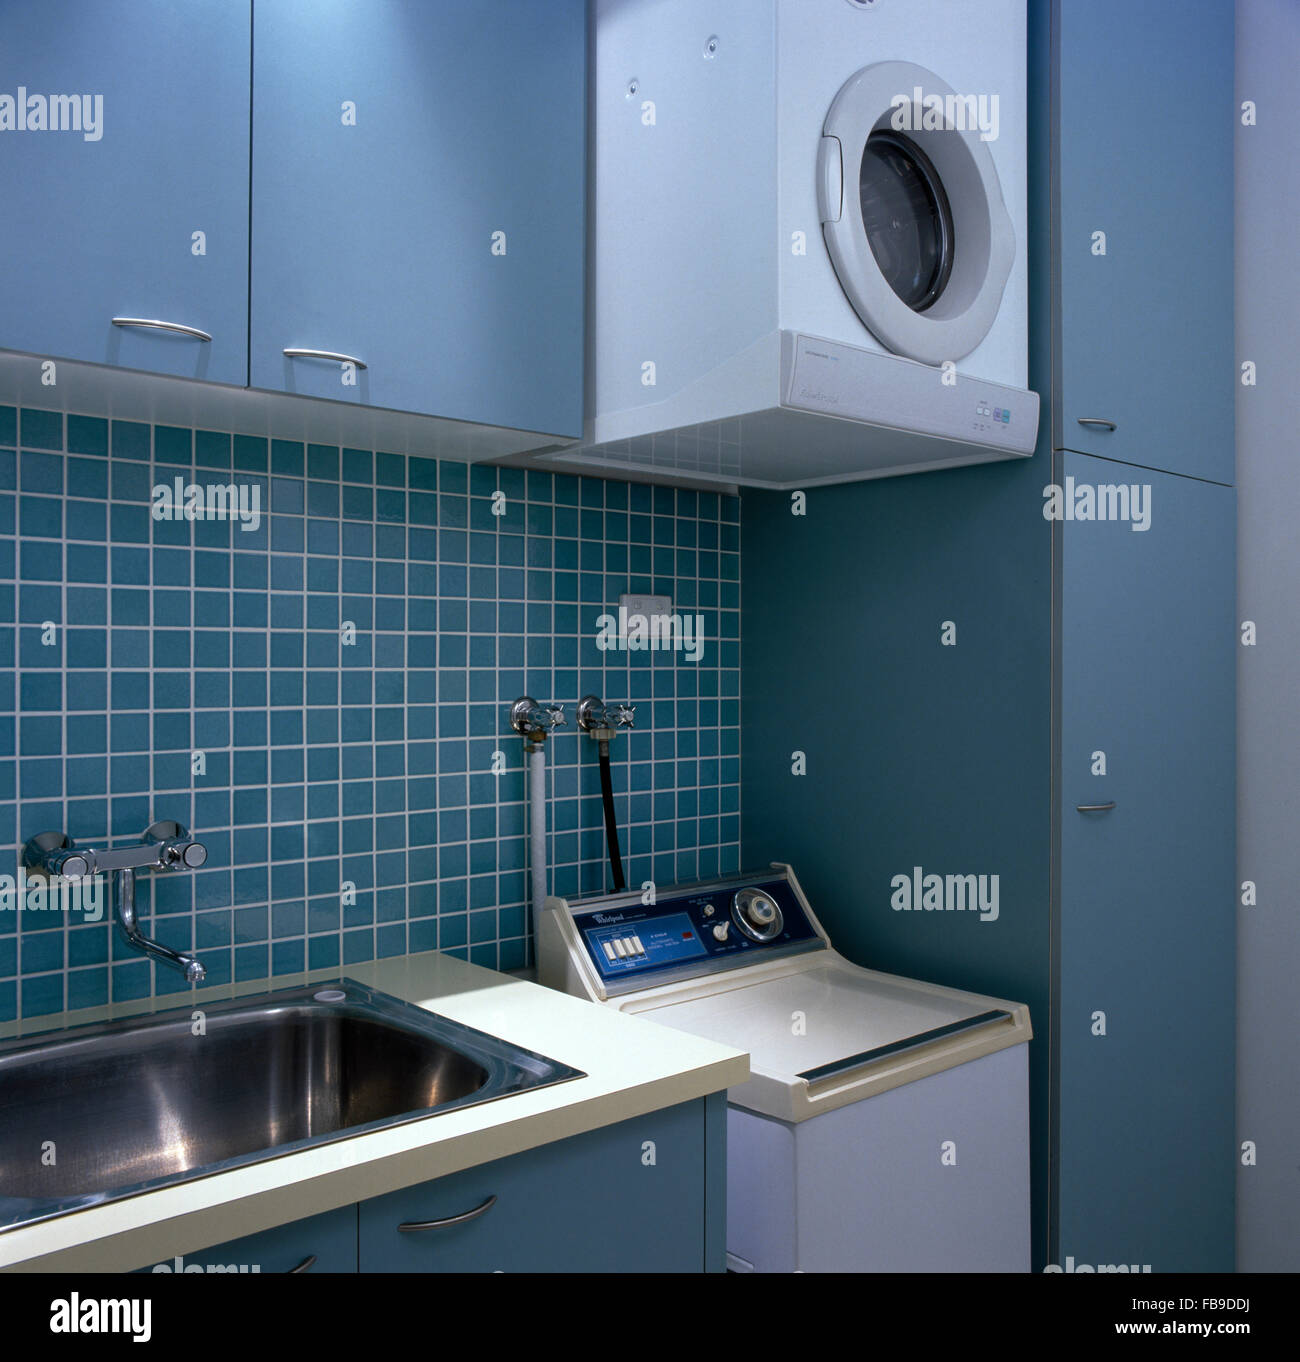 Wall Mounted Tumble Dryer Above Washing Machine In